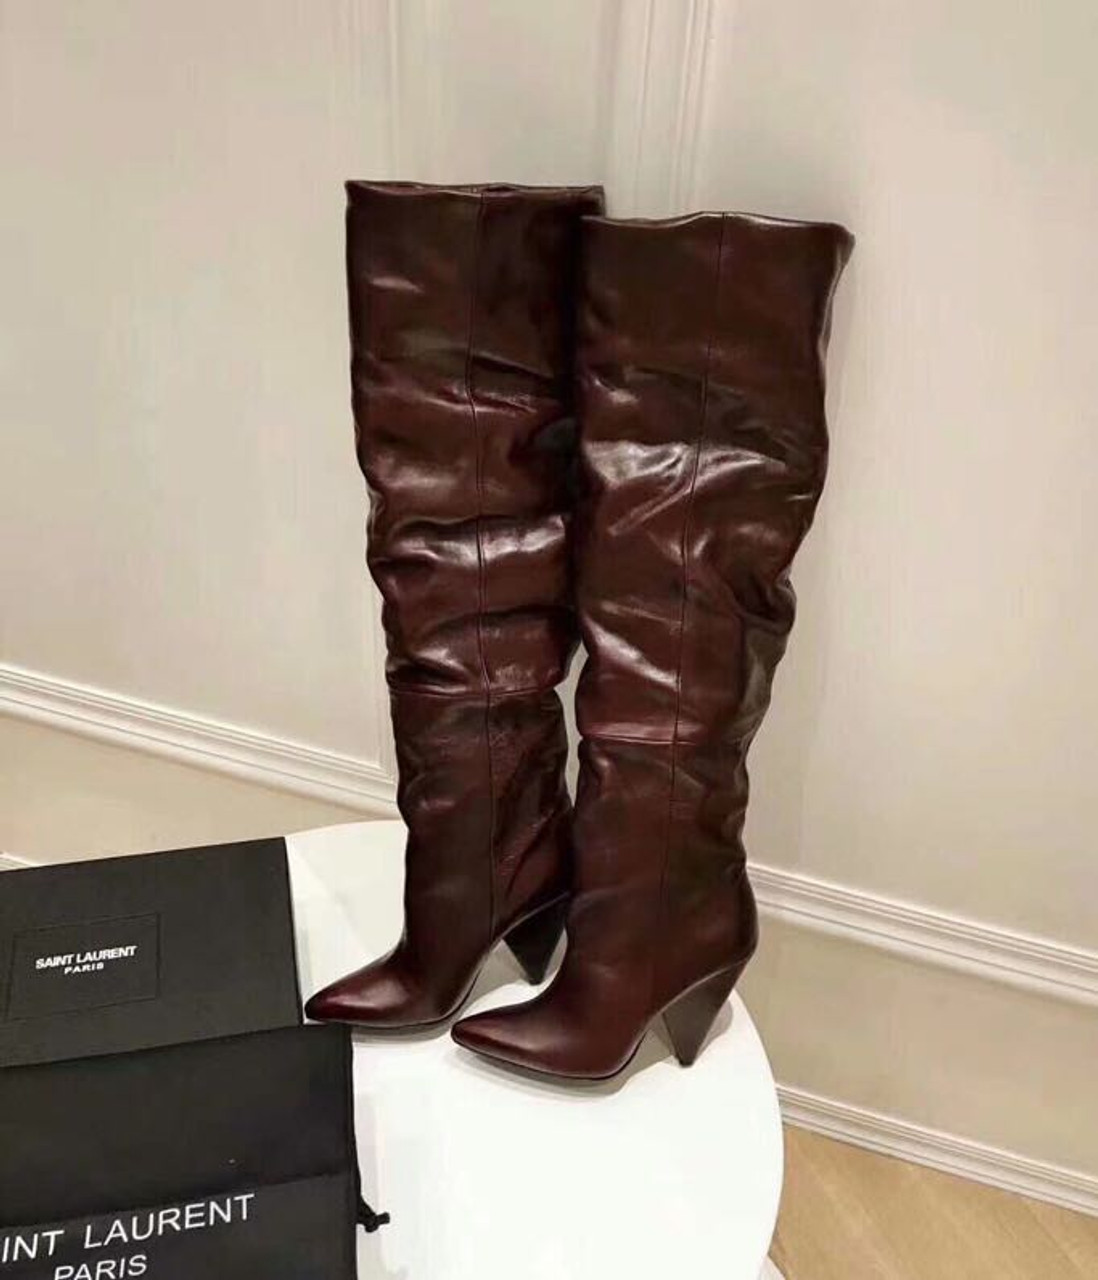 5a3ef9c9082 YSL Saint Laurent Niki 105 Thigh High Boots Calfskin Leather Fall Winter  2018 Collection